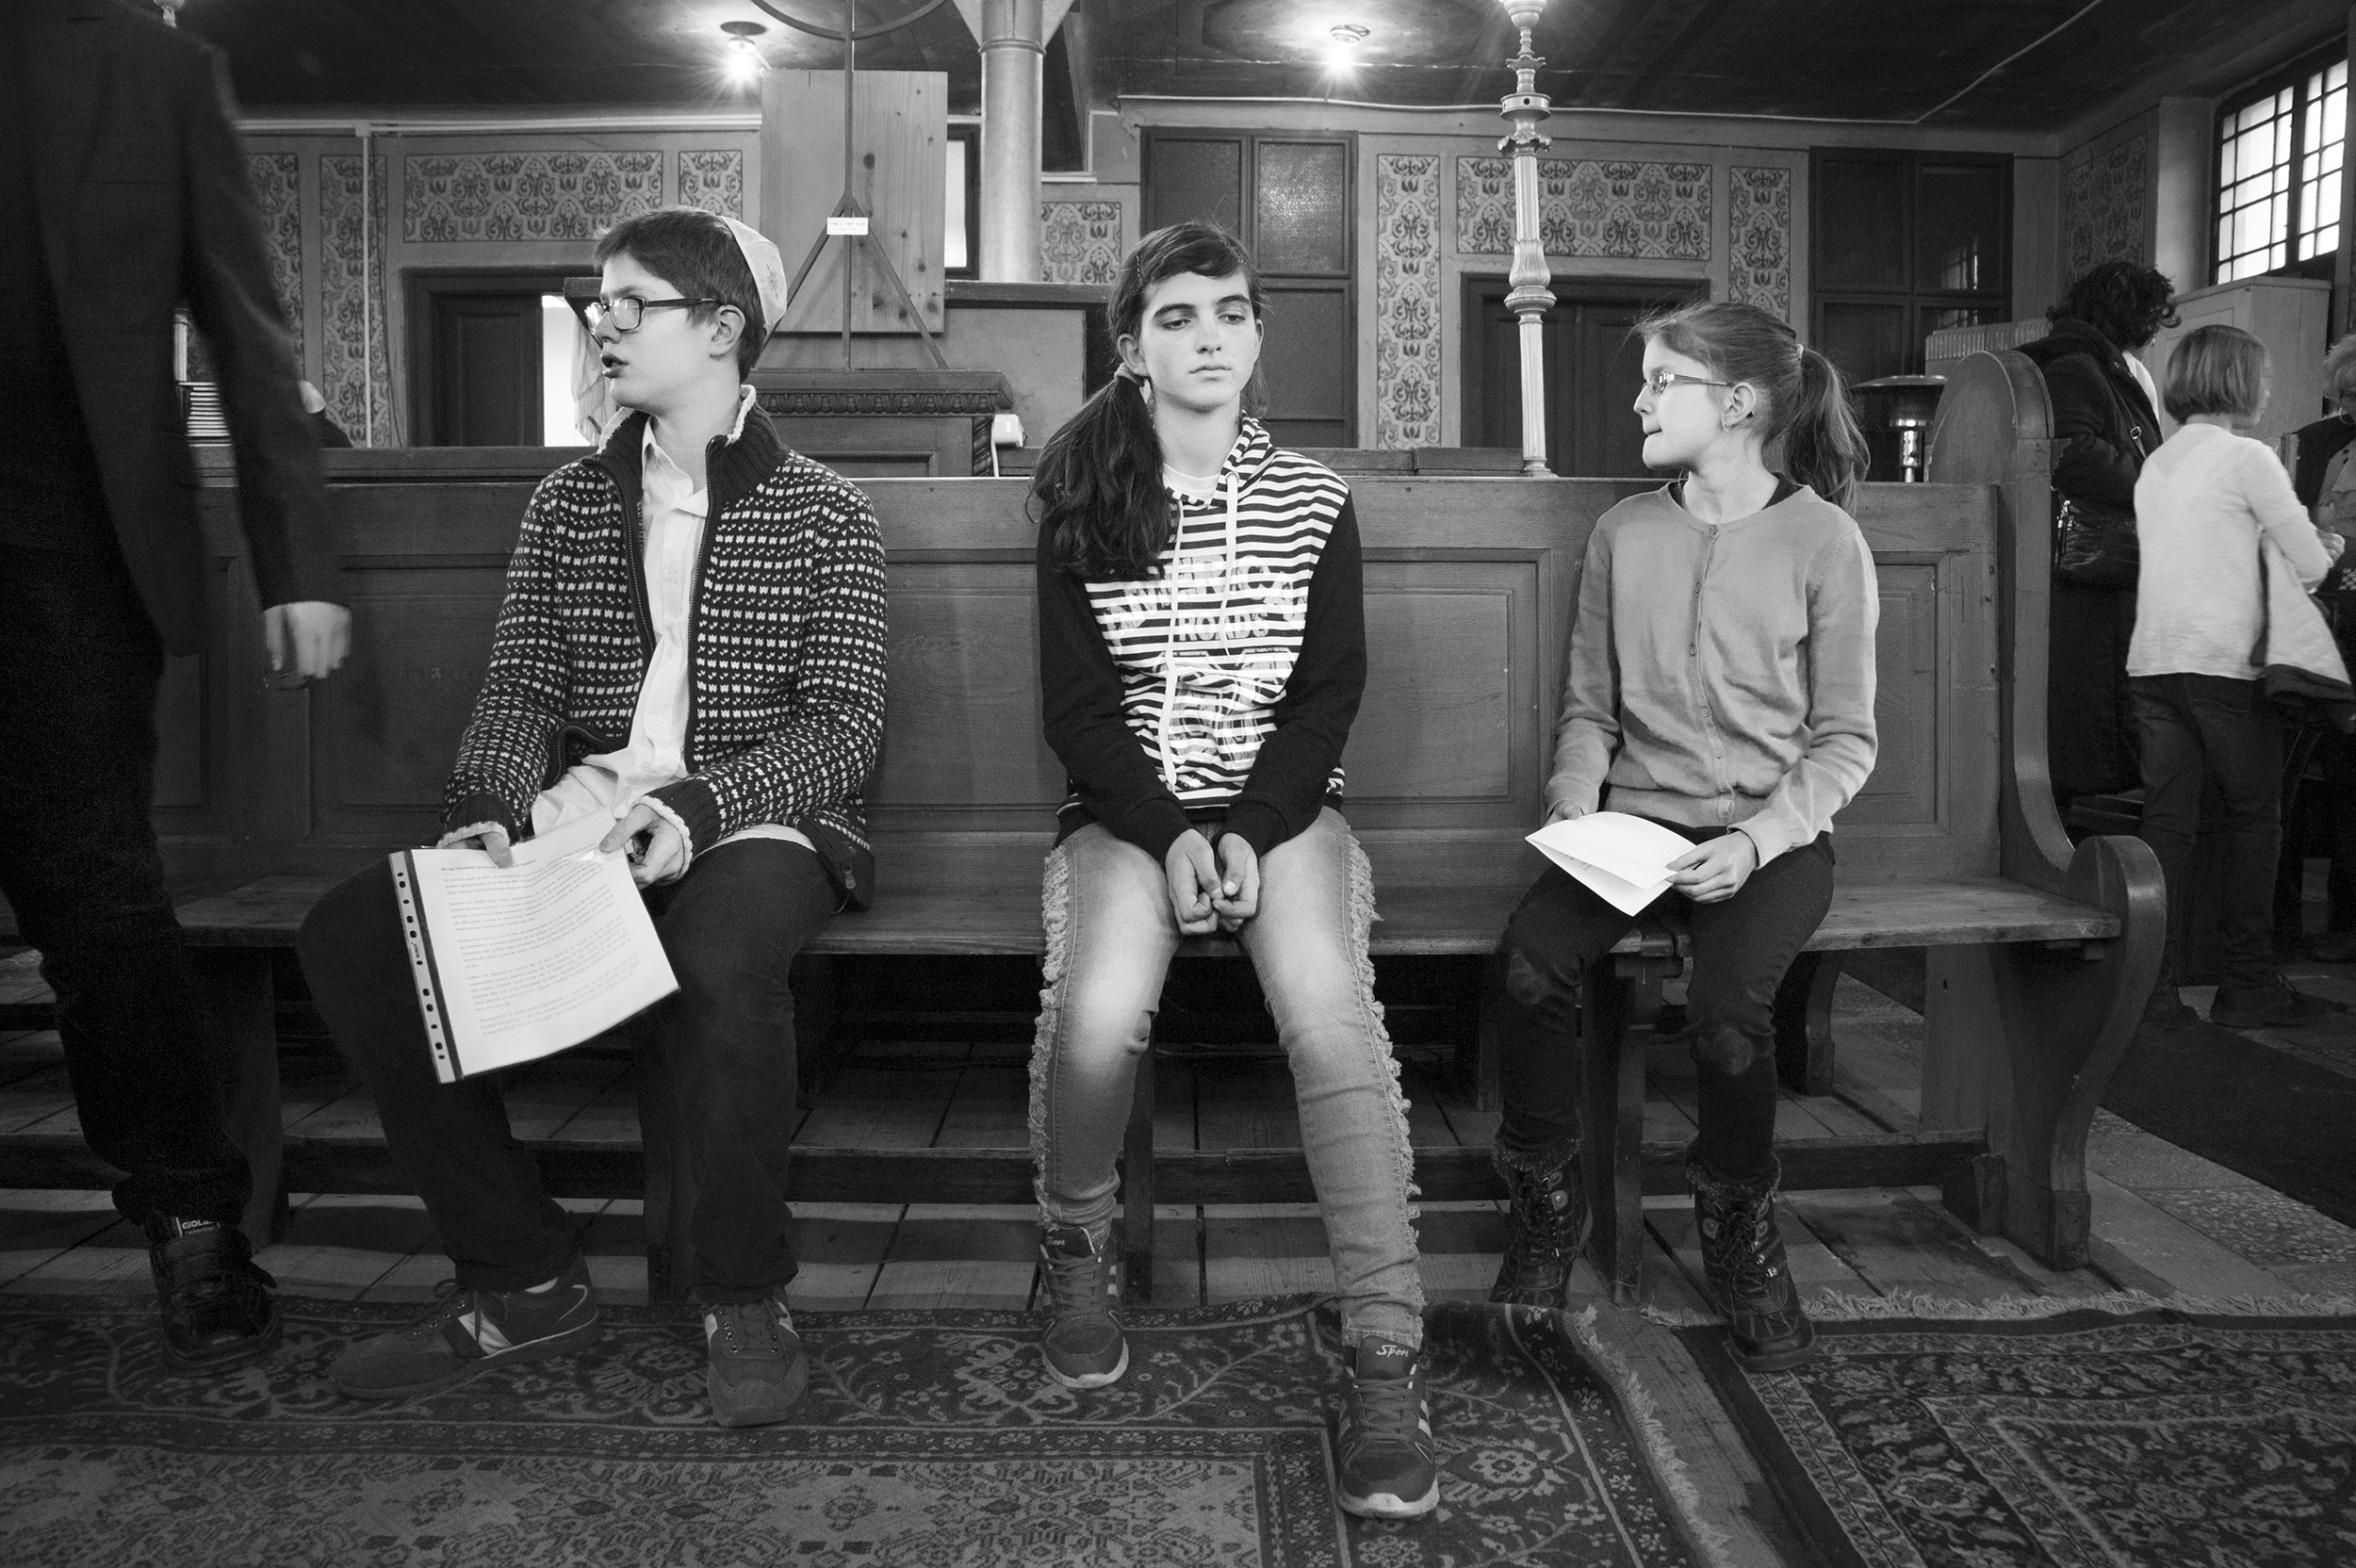 Three children wait as the community president prepares to speak to them about their responsibility to continue the ancient religious traditions of the Jewish people before their Bar and Bat Mitzvah ceremonies on January 16, 2015.